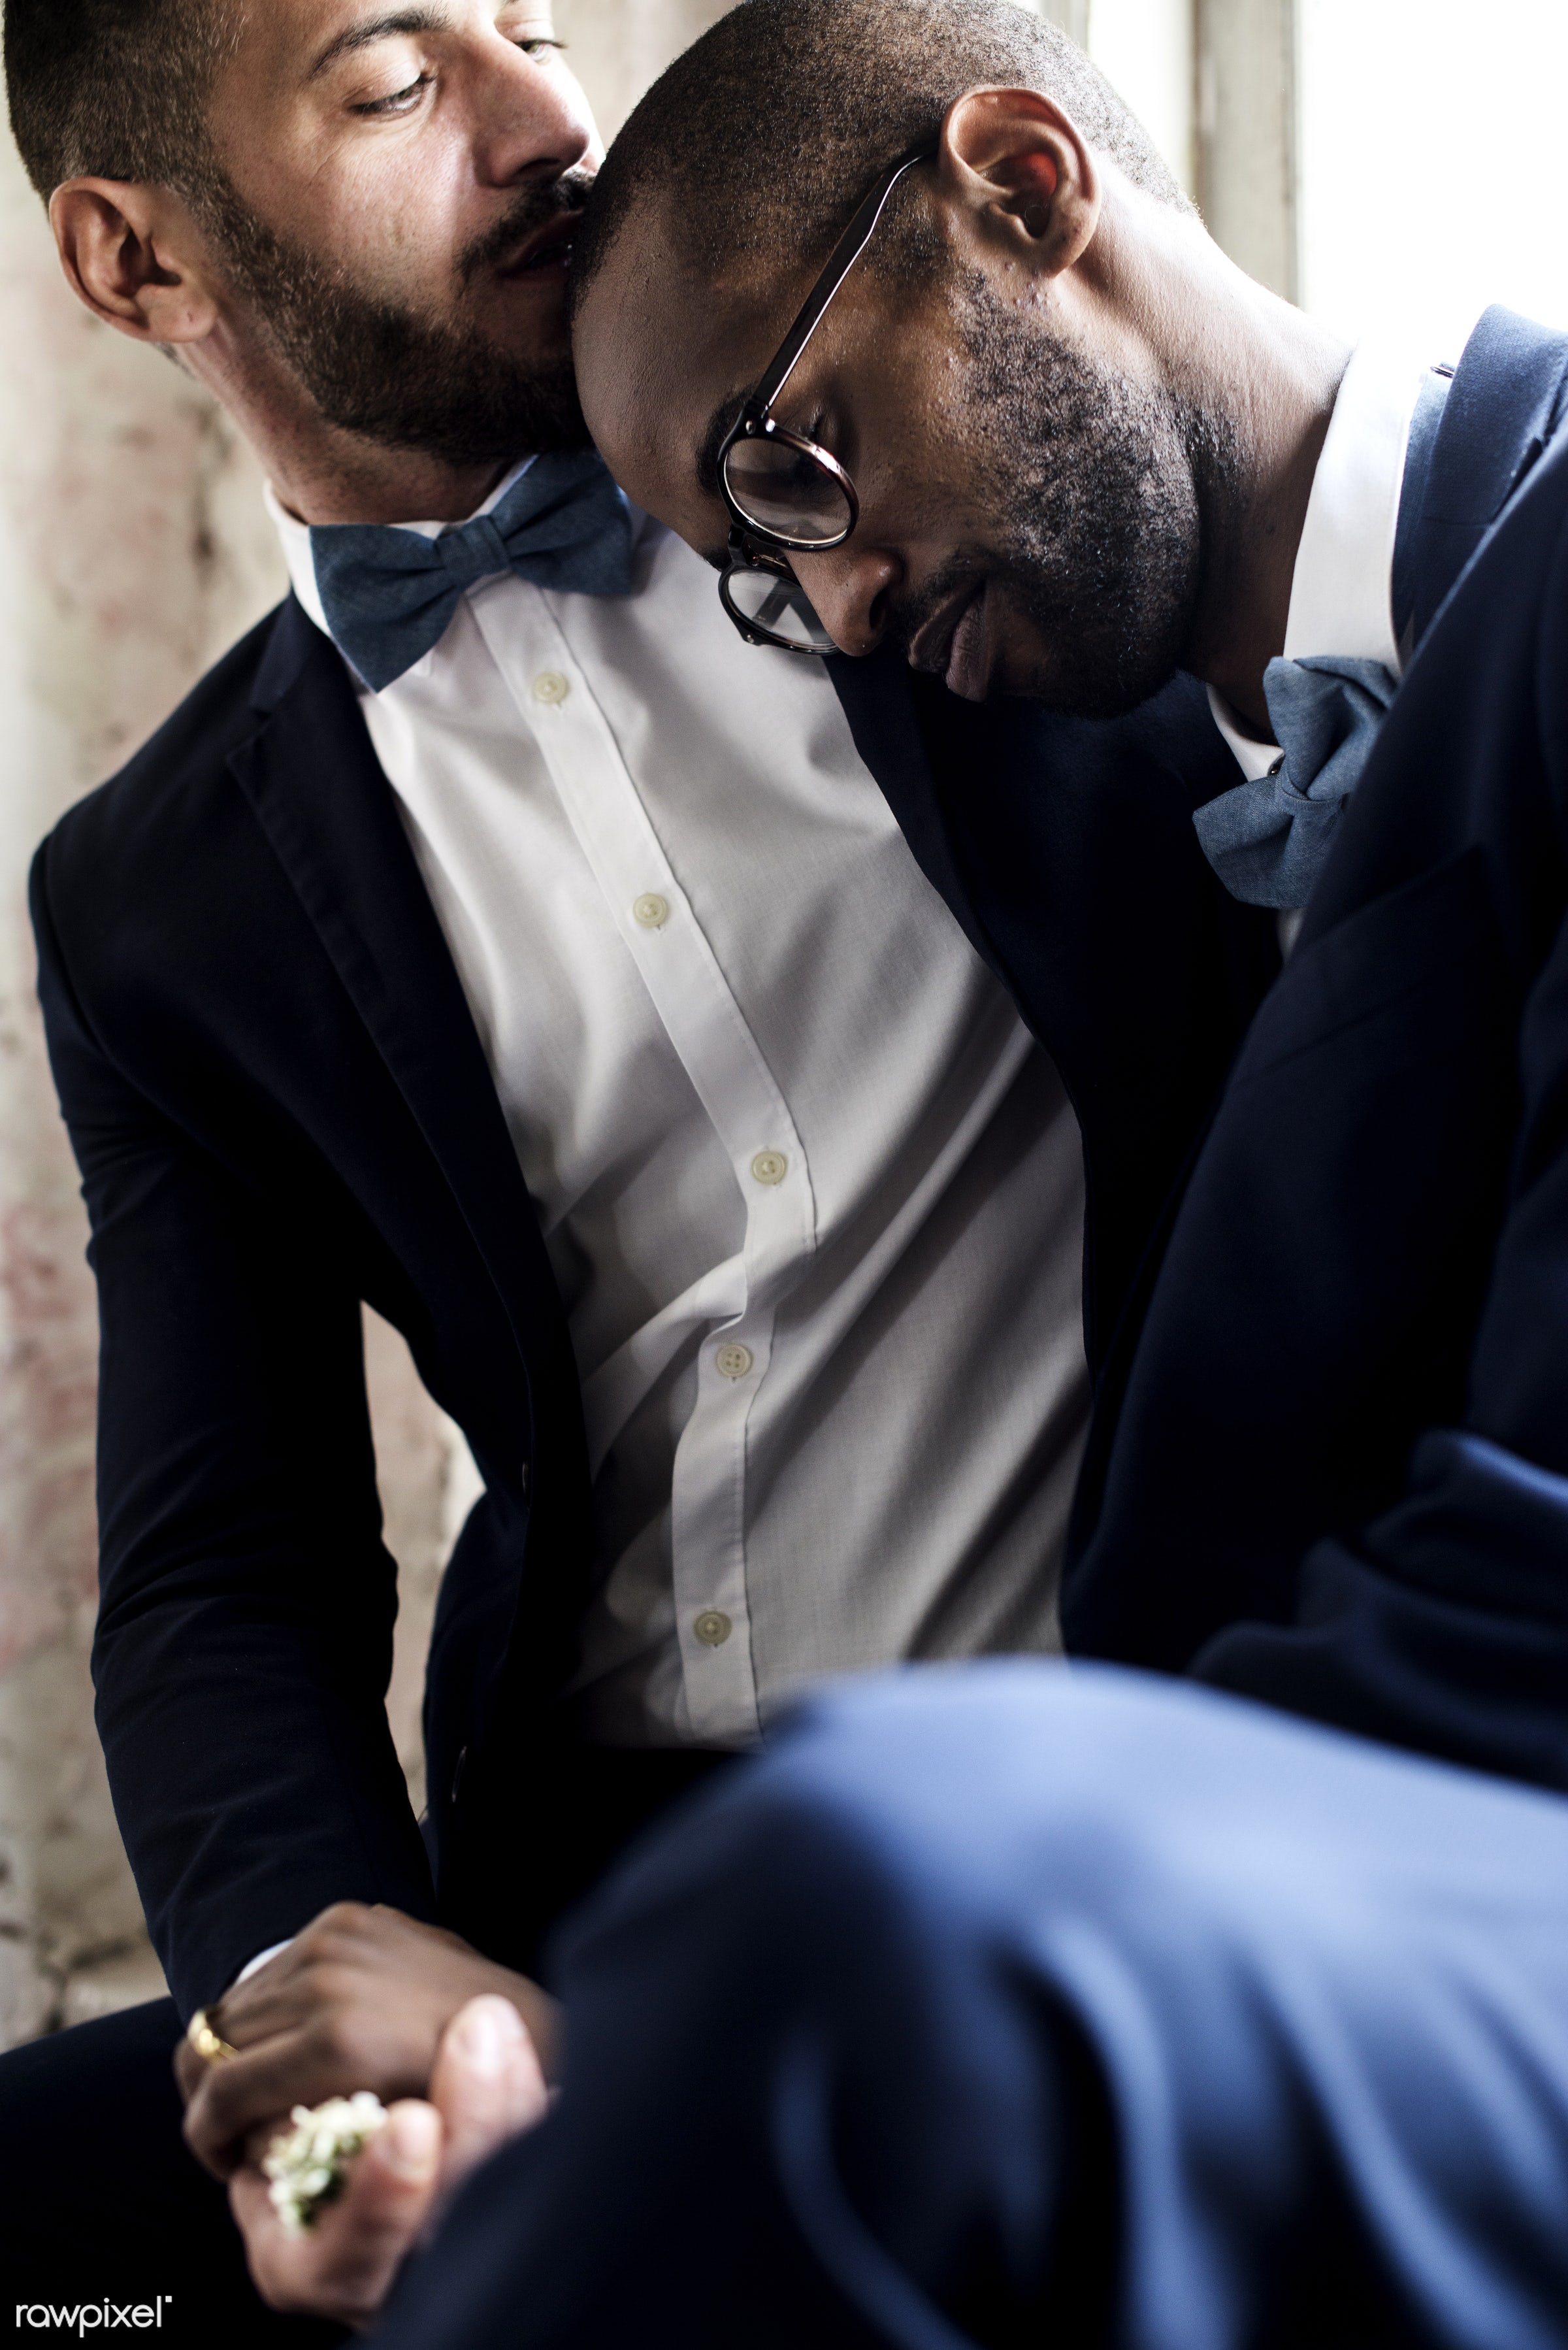 kissing, gay couple, african descent, occasion, ceremony, together, lgbt, caucasian, love, two, wedding, banquet, men,...